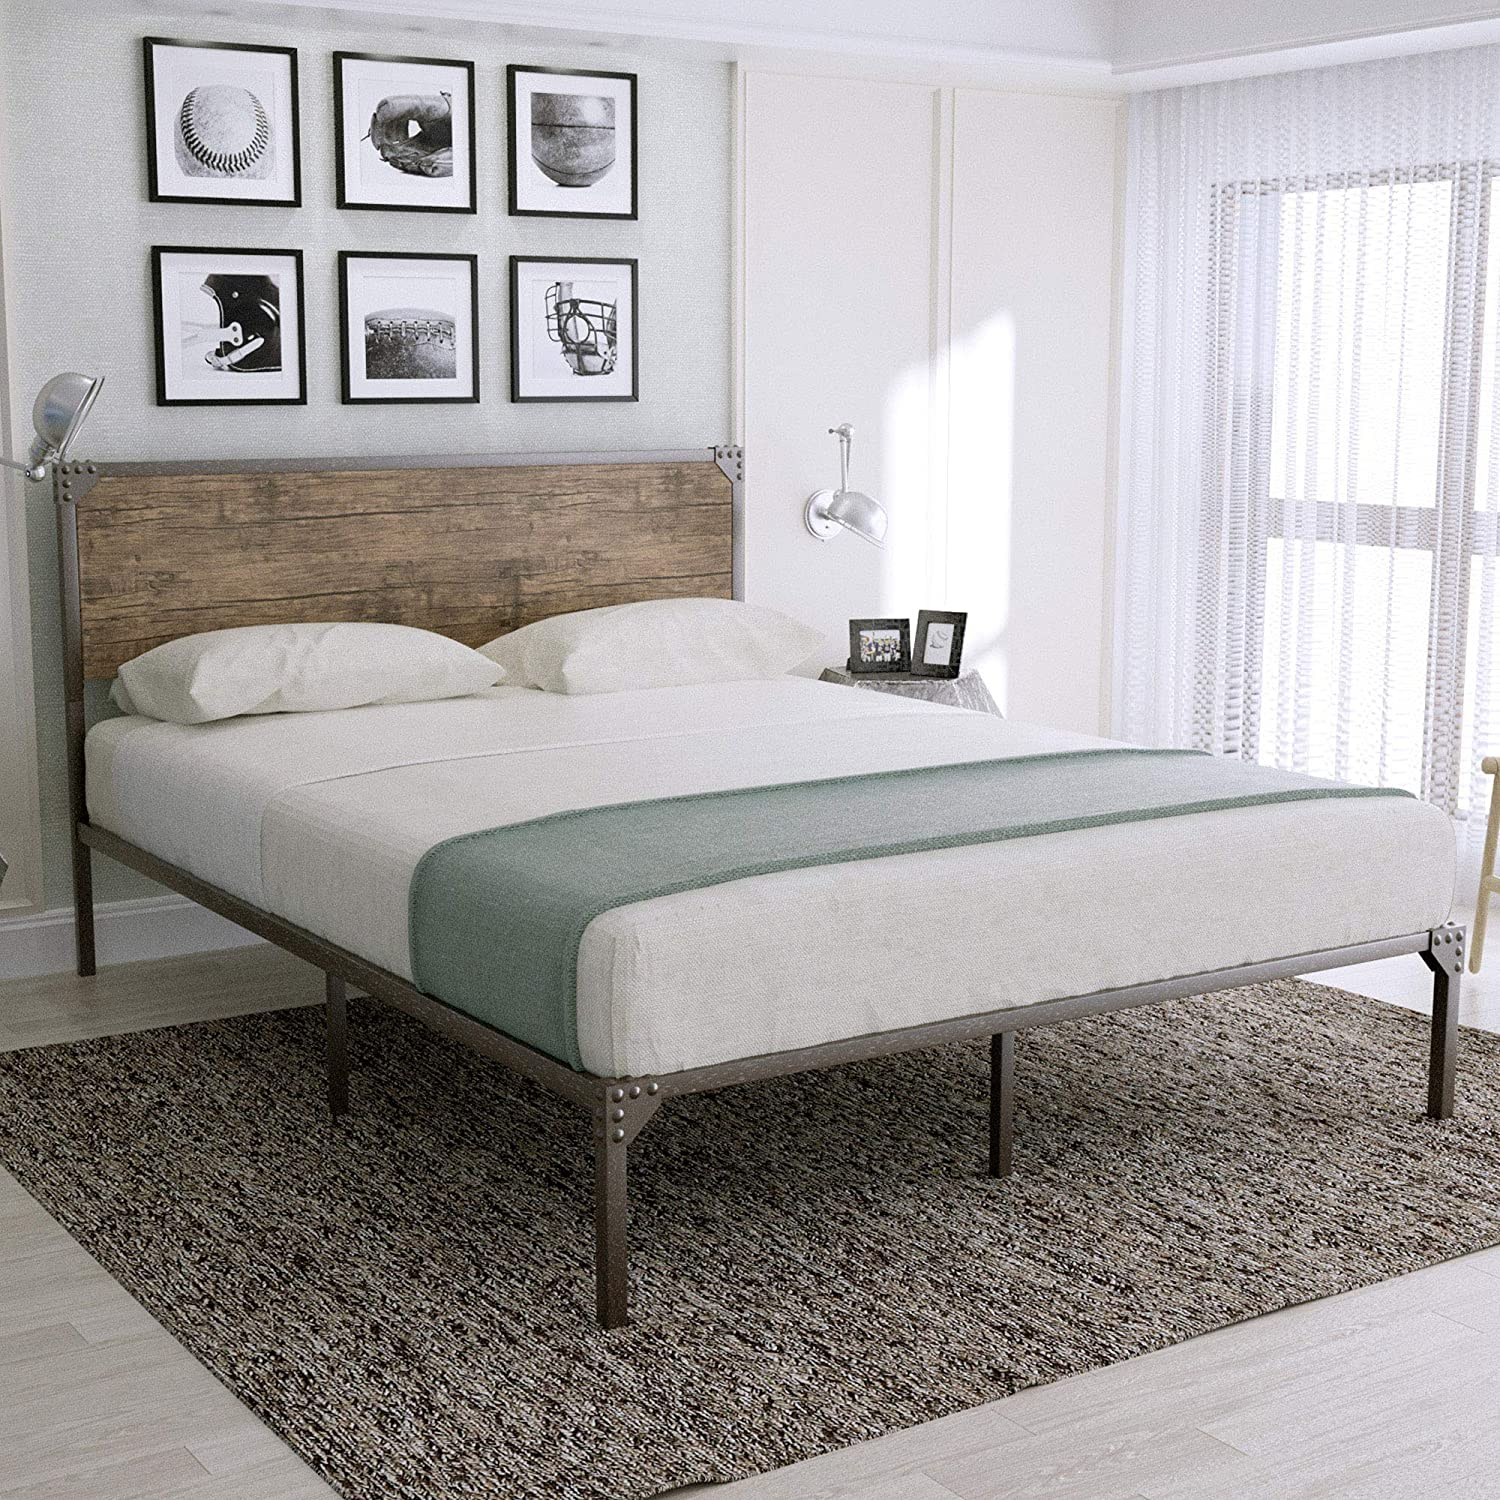 Urest Industrial Queen Size Bed Frame with Headboard Metal Platform Bed Frame Mattress Foundation Strong Slat Support No Box Spring Needed, Snow Brown